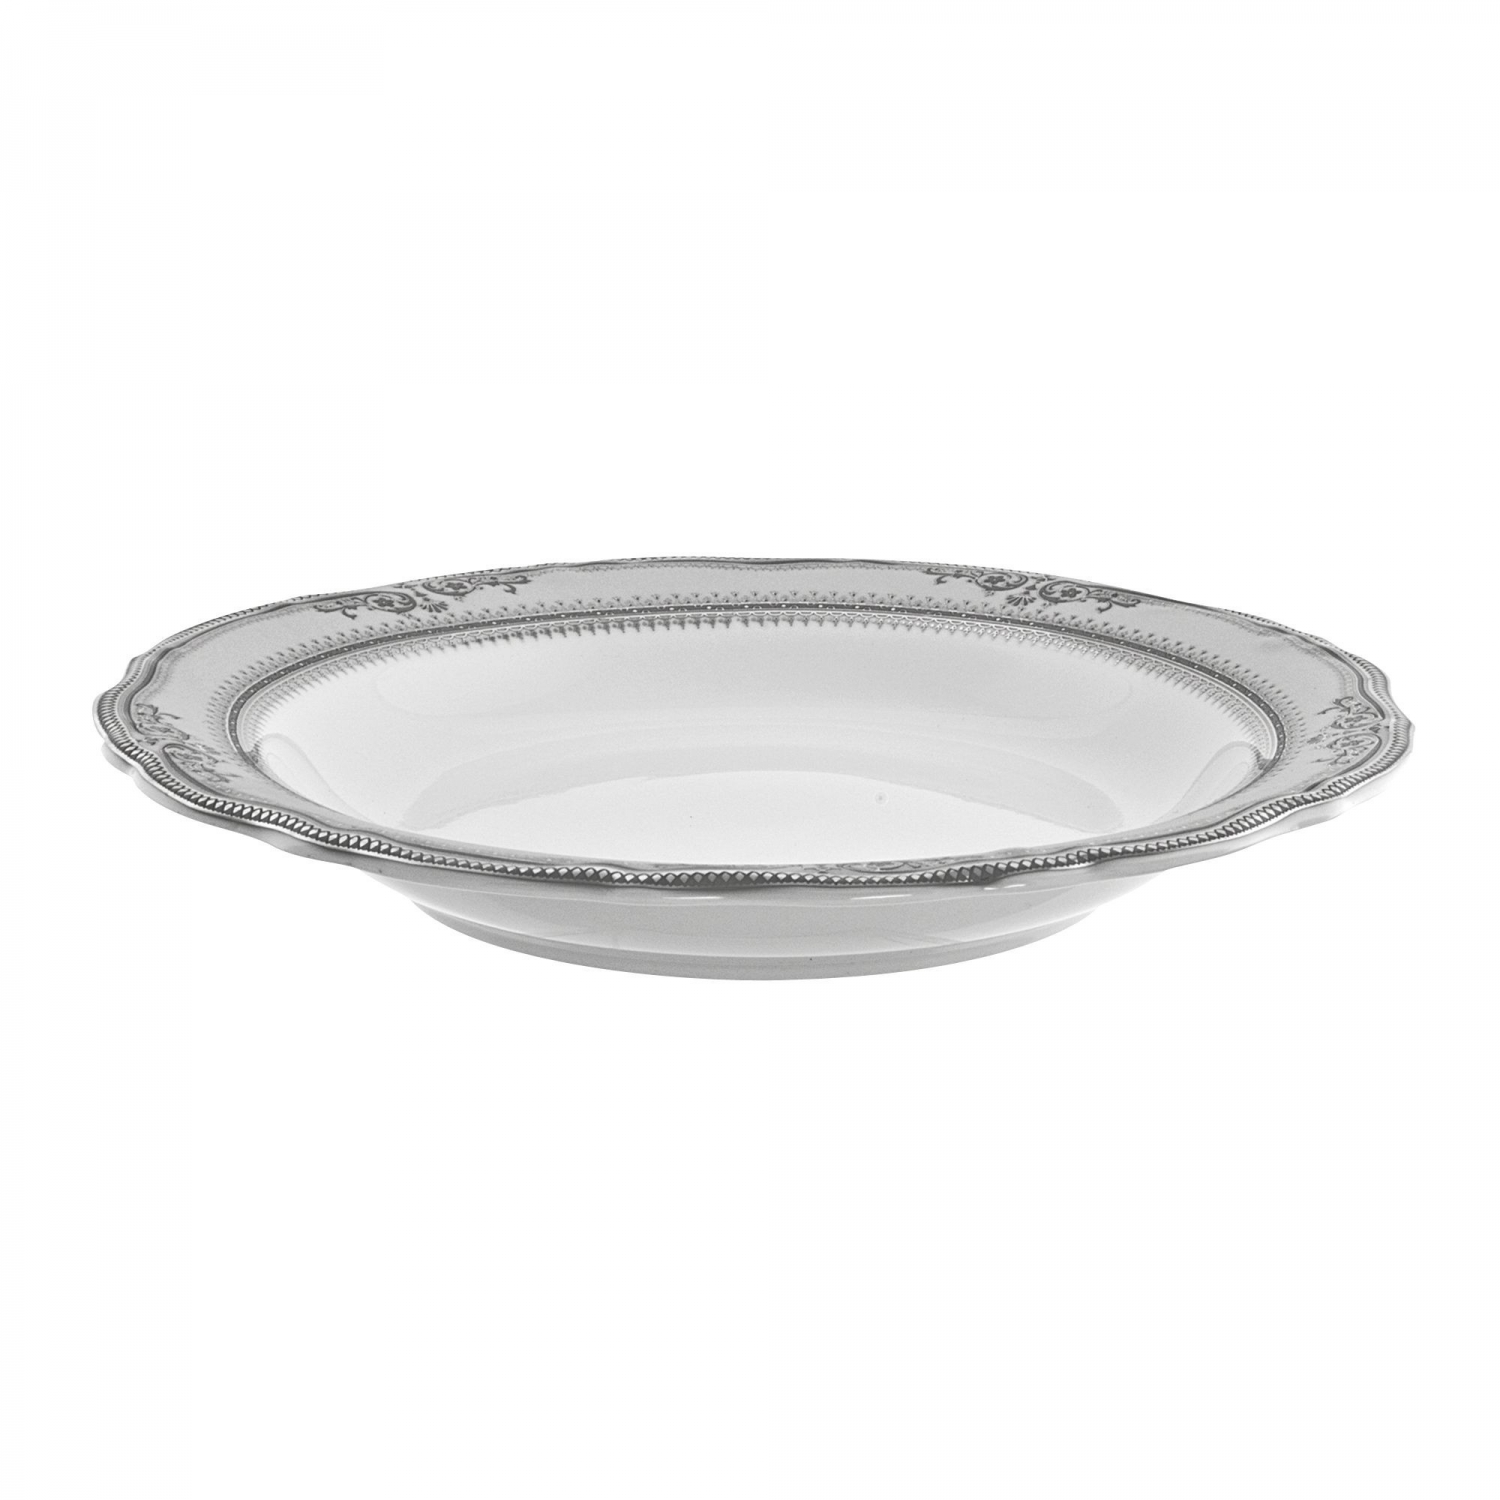 10 Strawberry Street VAN-3P Vanessa Platinum Rim Soup Bowl 9-1/4""